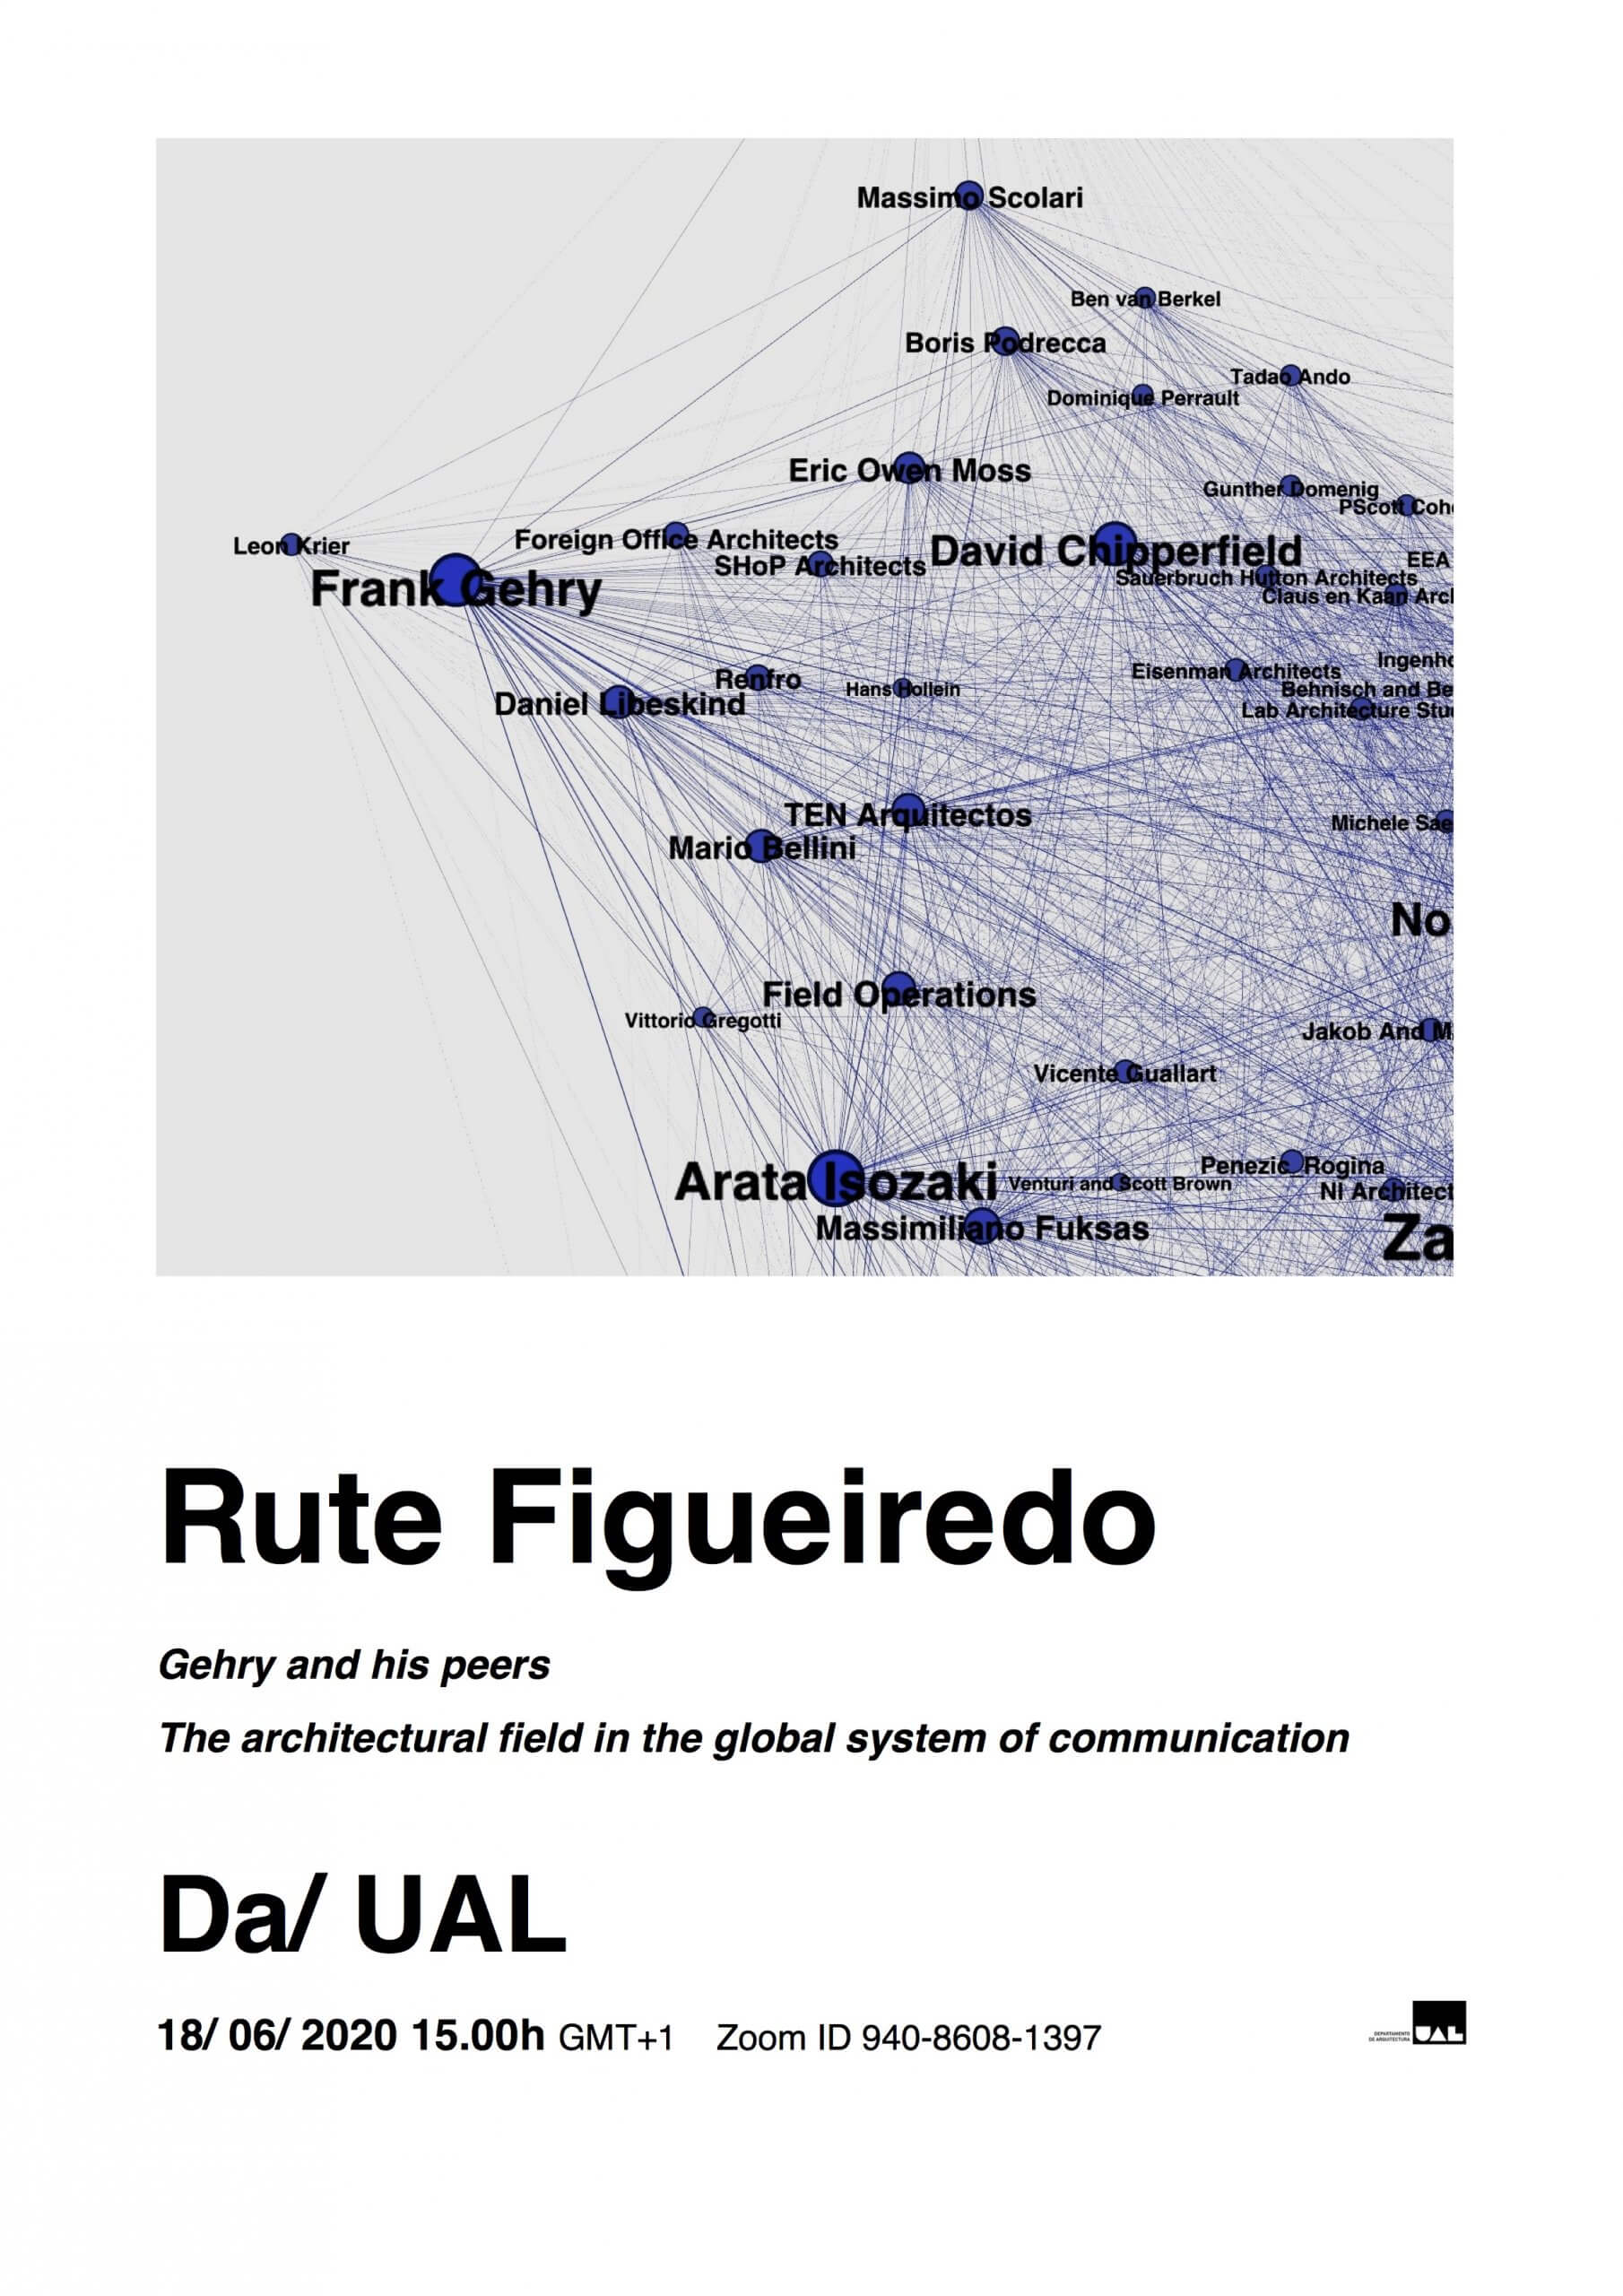 Conferência - Rute Figueiredo - Gehry and his peers. The architectural field in the global system of communication